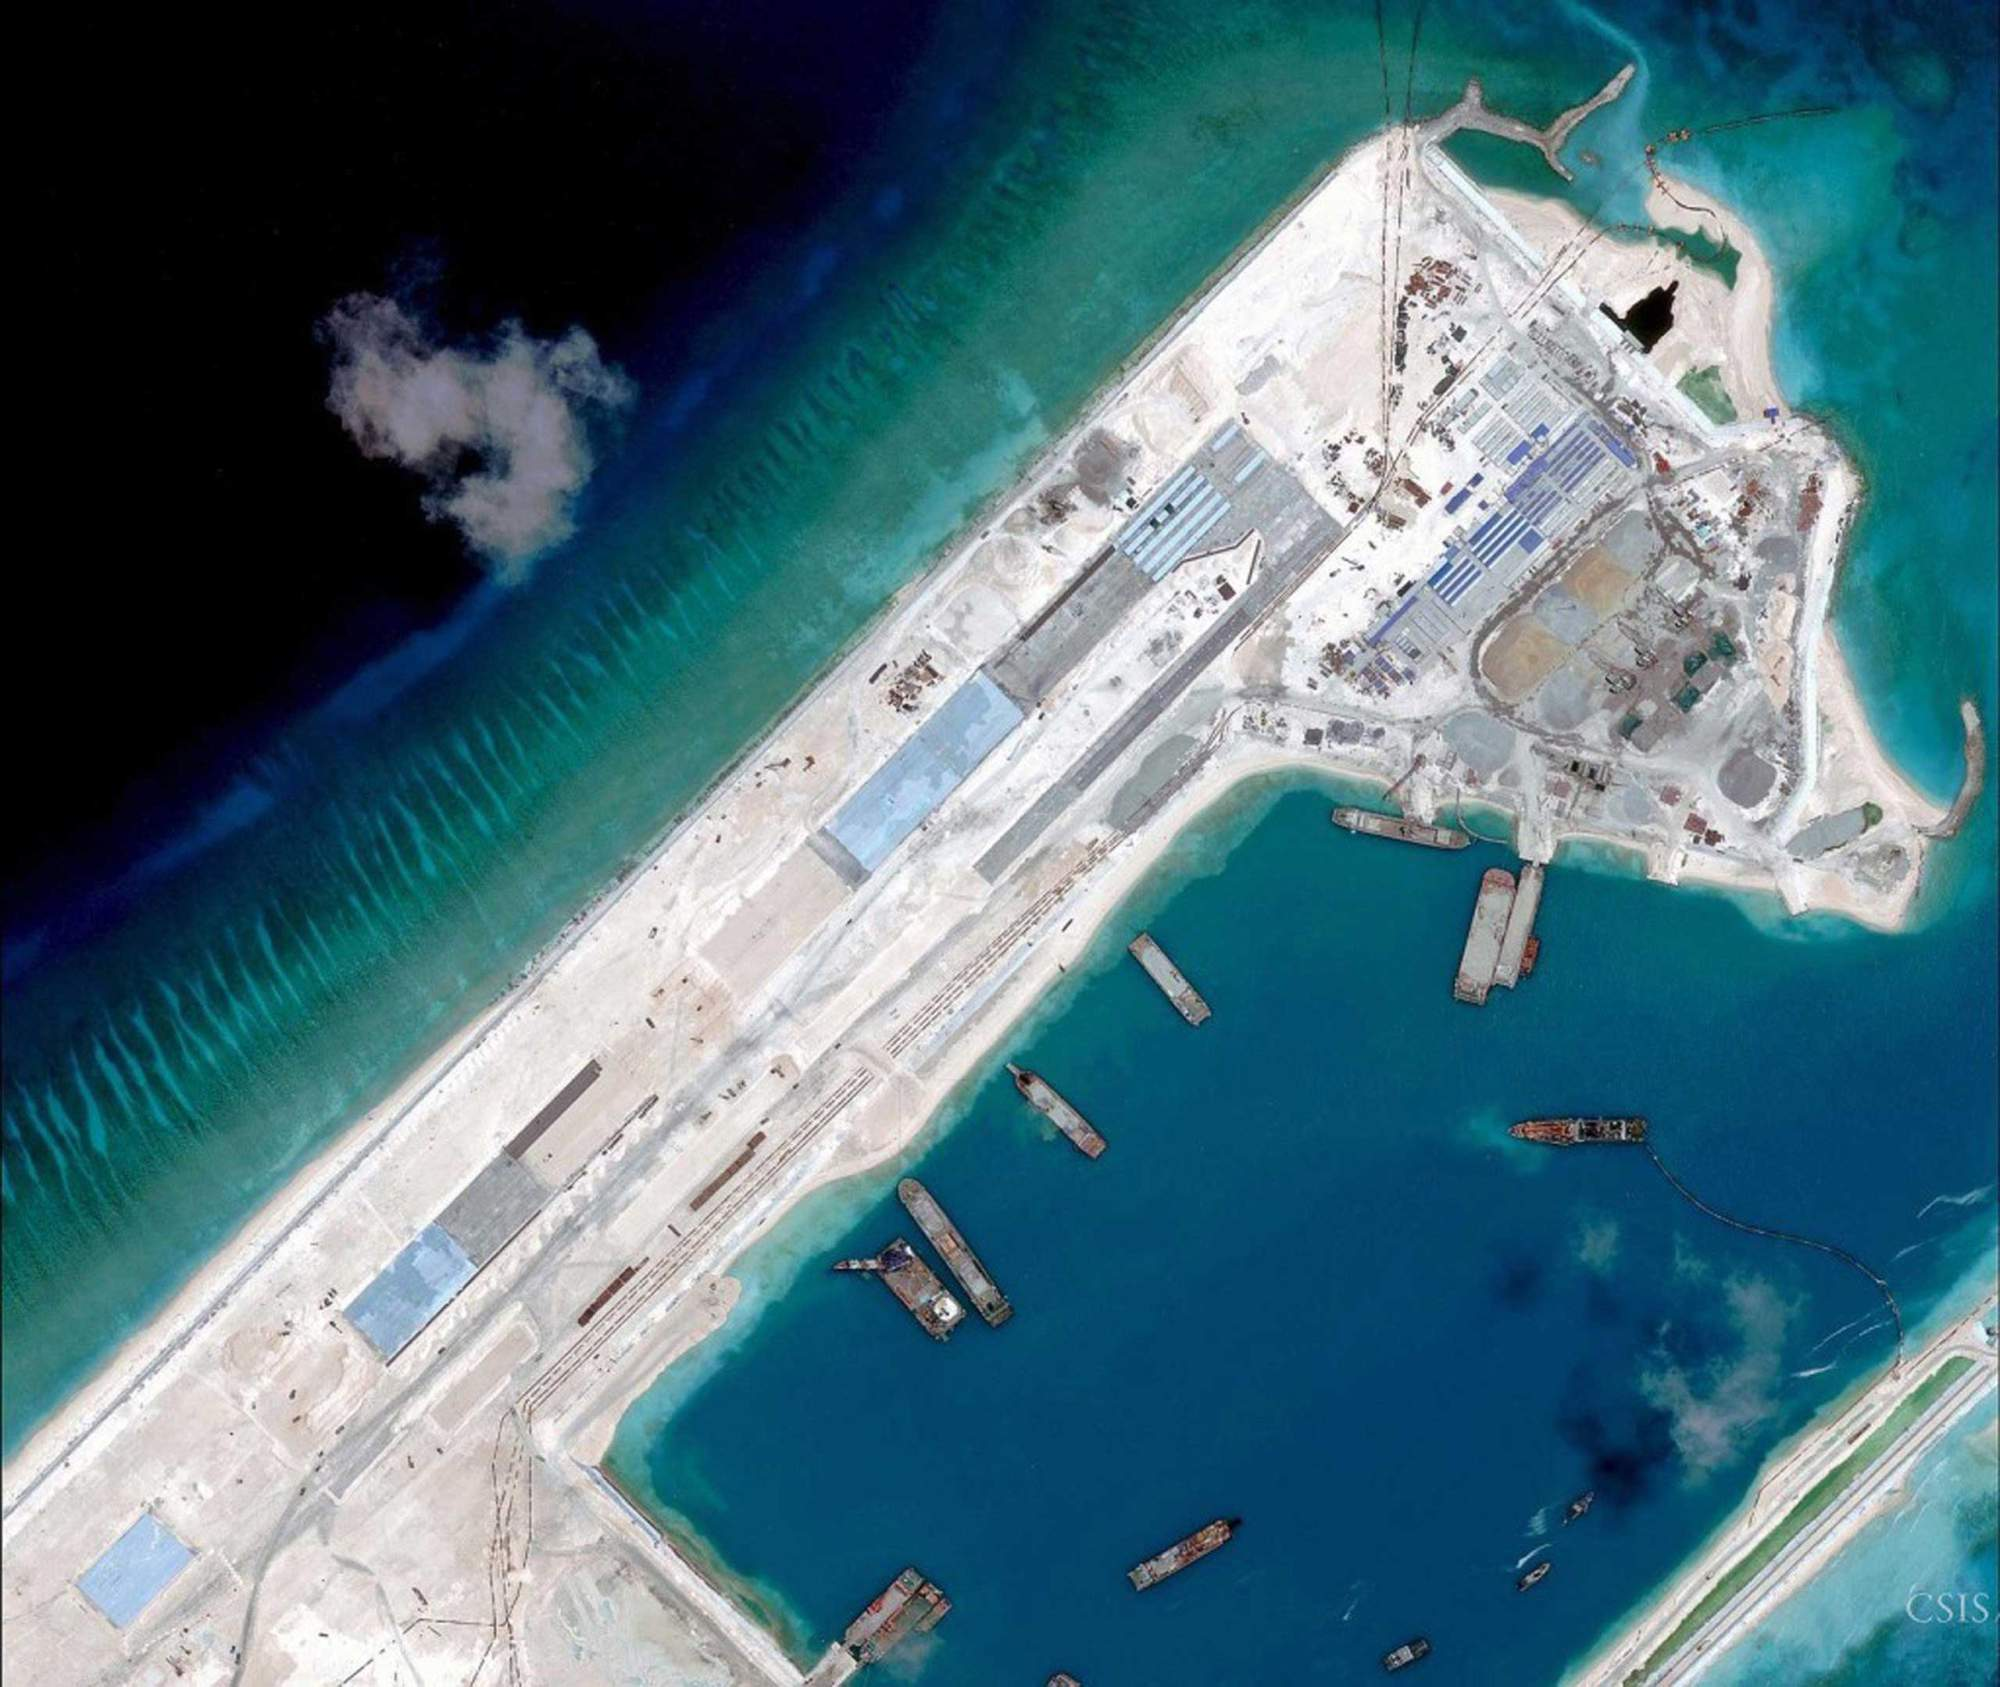 essay s island building campaign could hint toward further airstrip construction on the fiery cross reef in the south sea is pictured in this